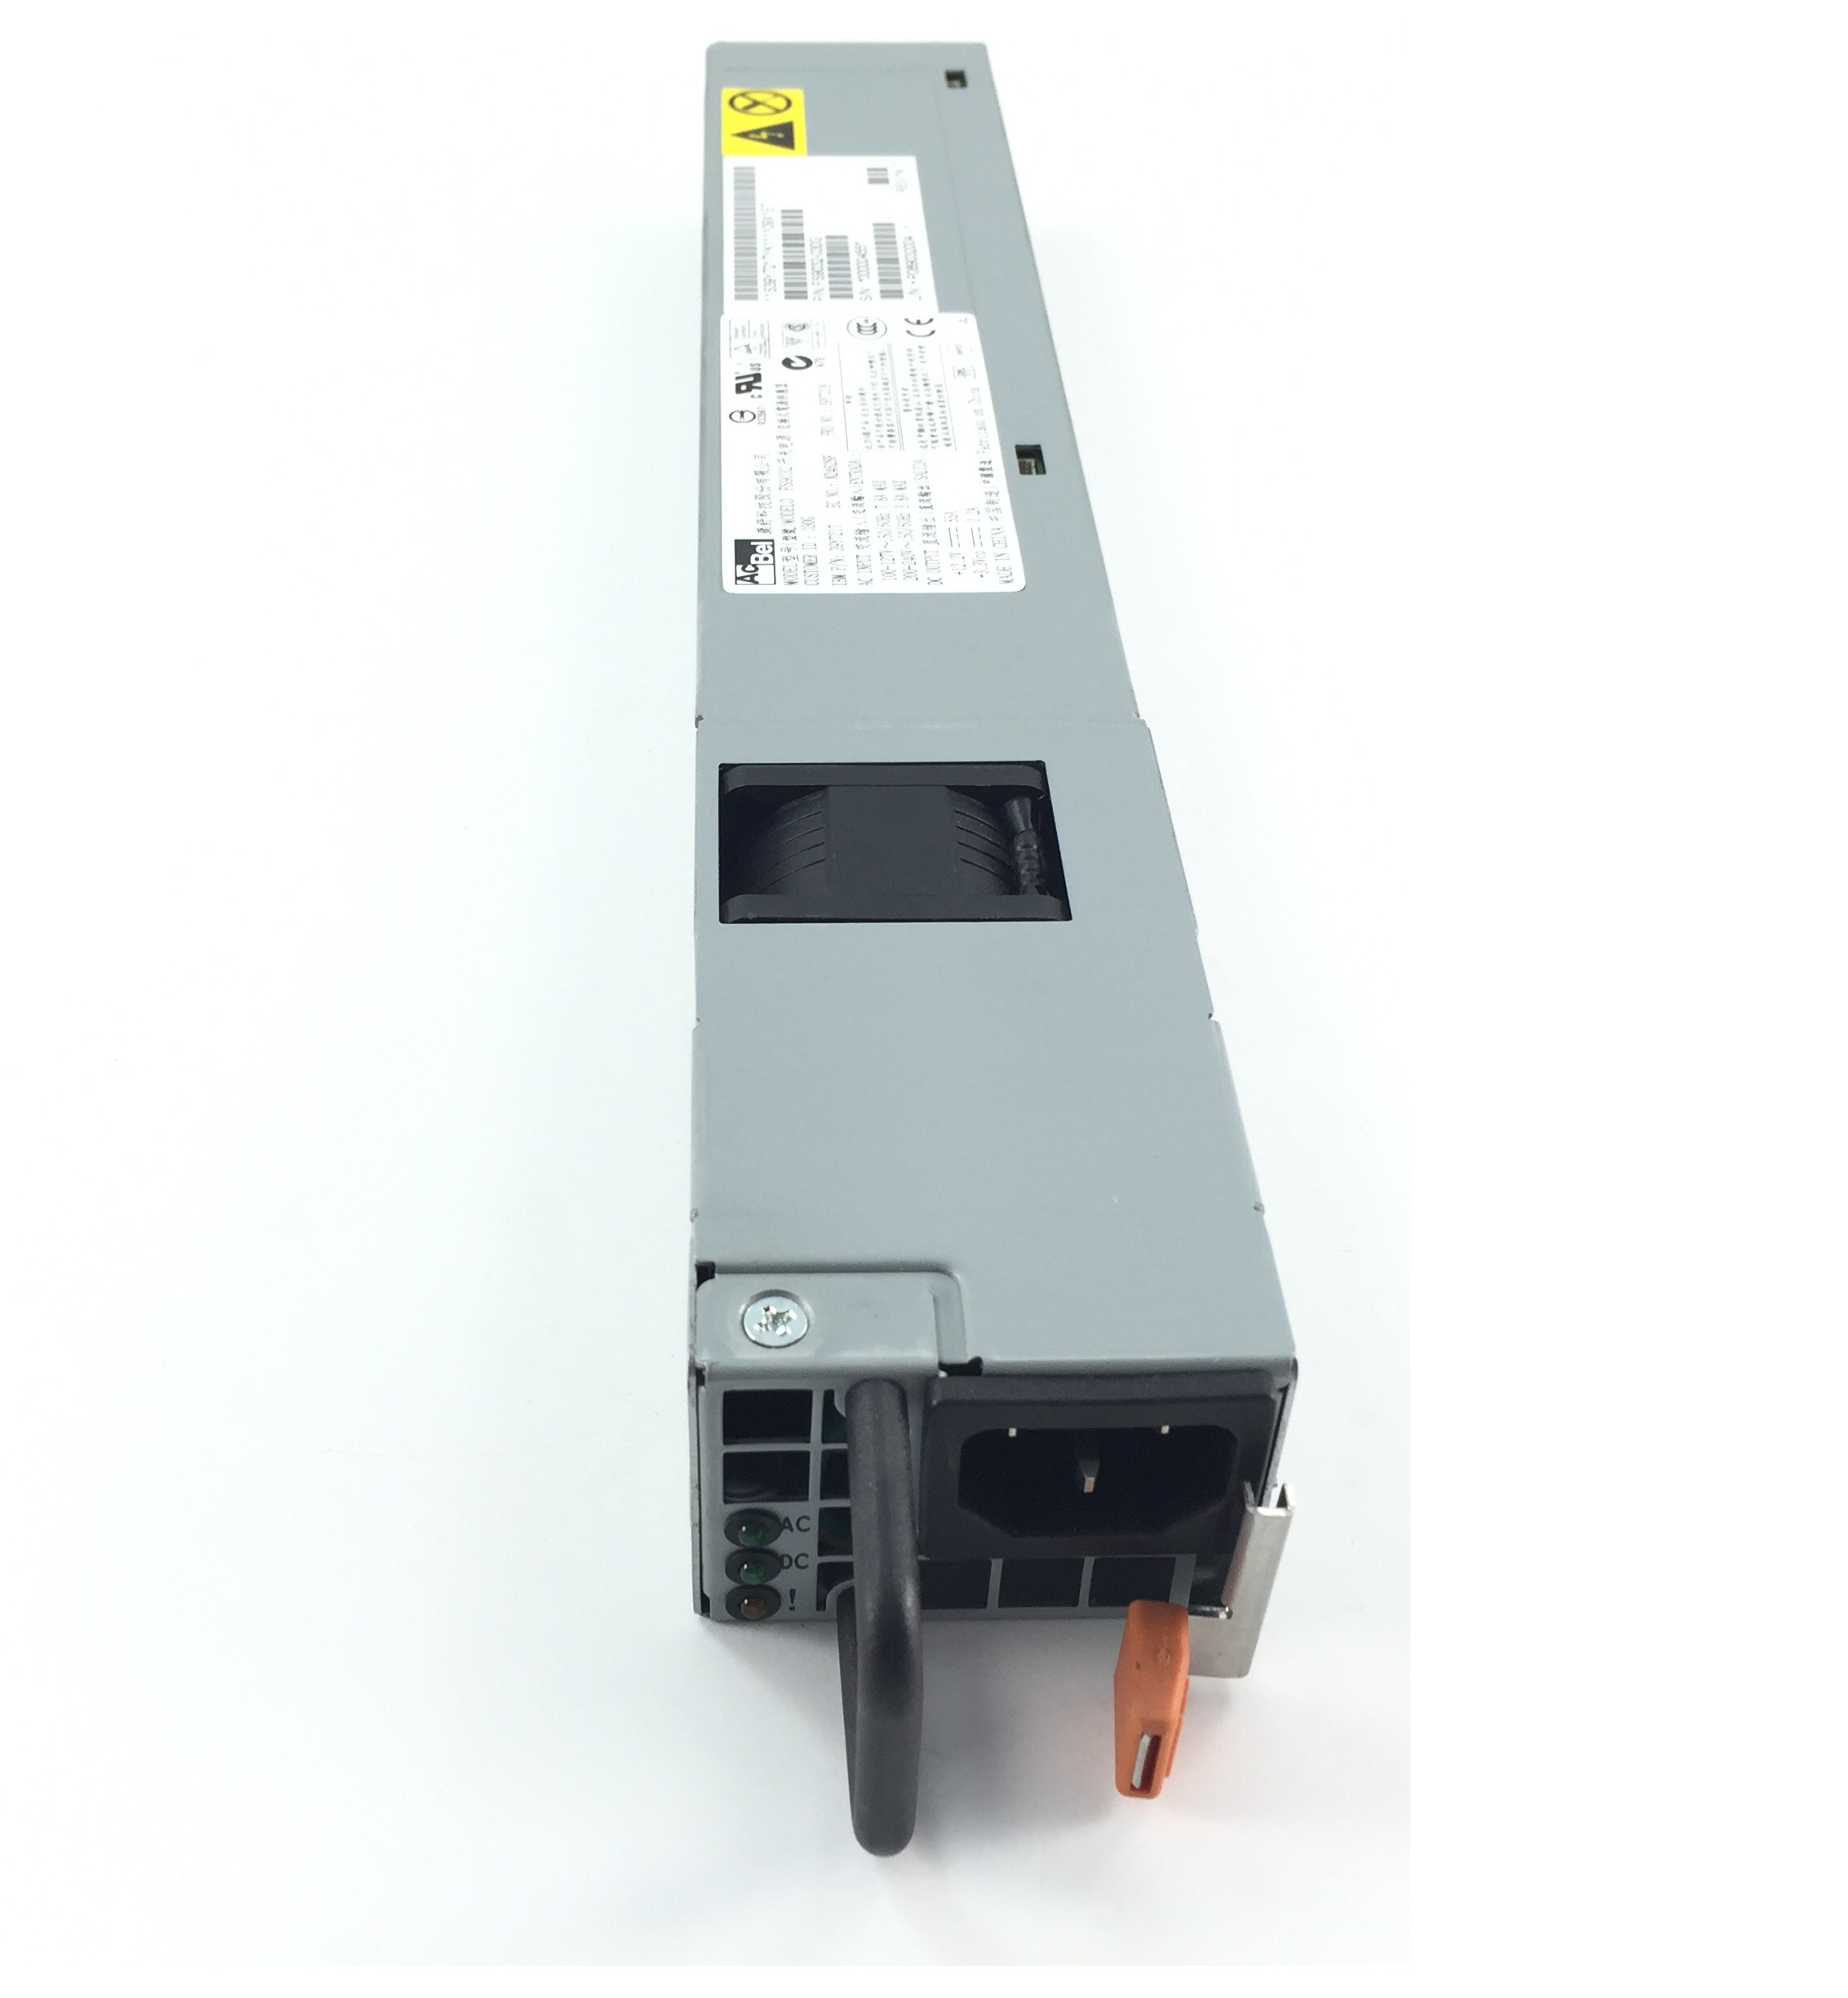 IBM X3650 M2 M3 675W EMERSON POWER SUPPLY (39Y7218)